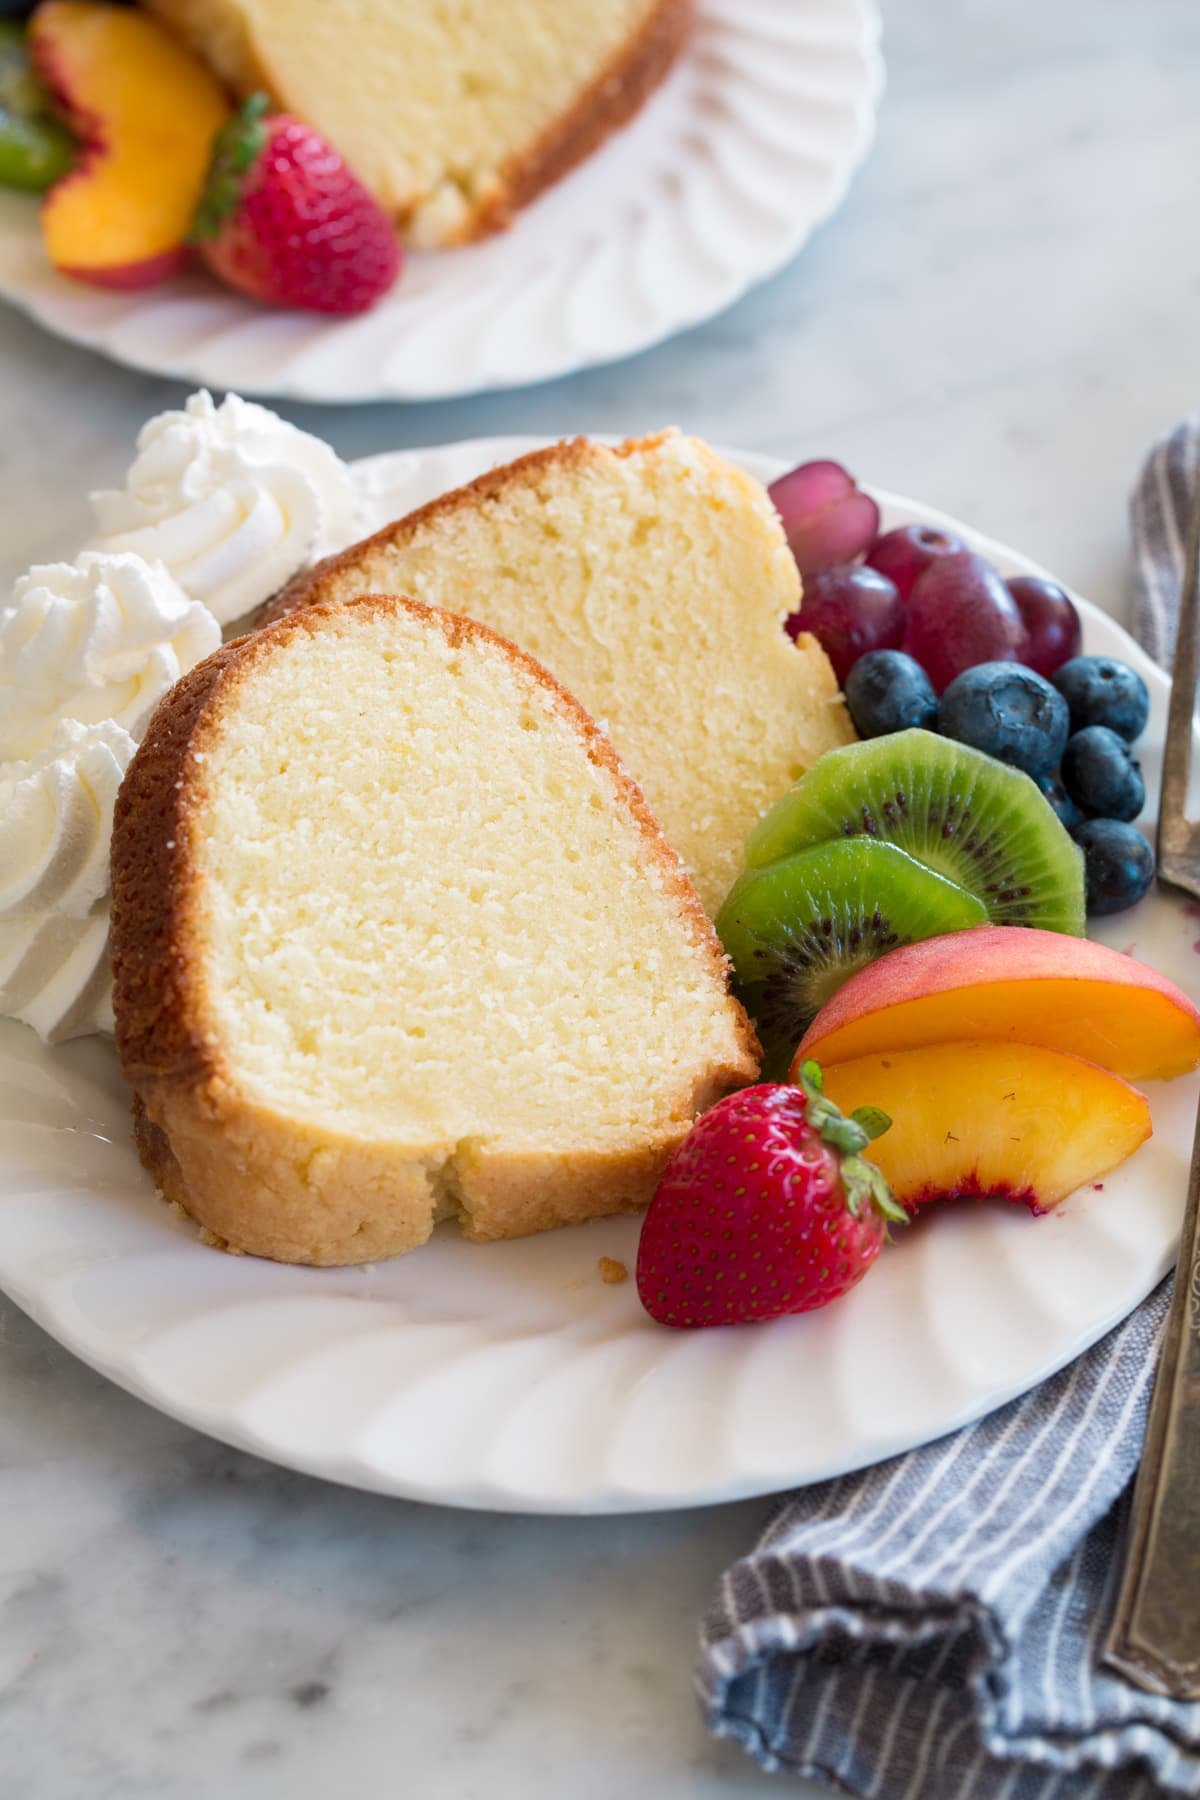 Slice of pound cake on a dessert plate with a side of fresh fruit and whipped cream.